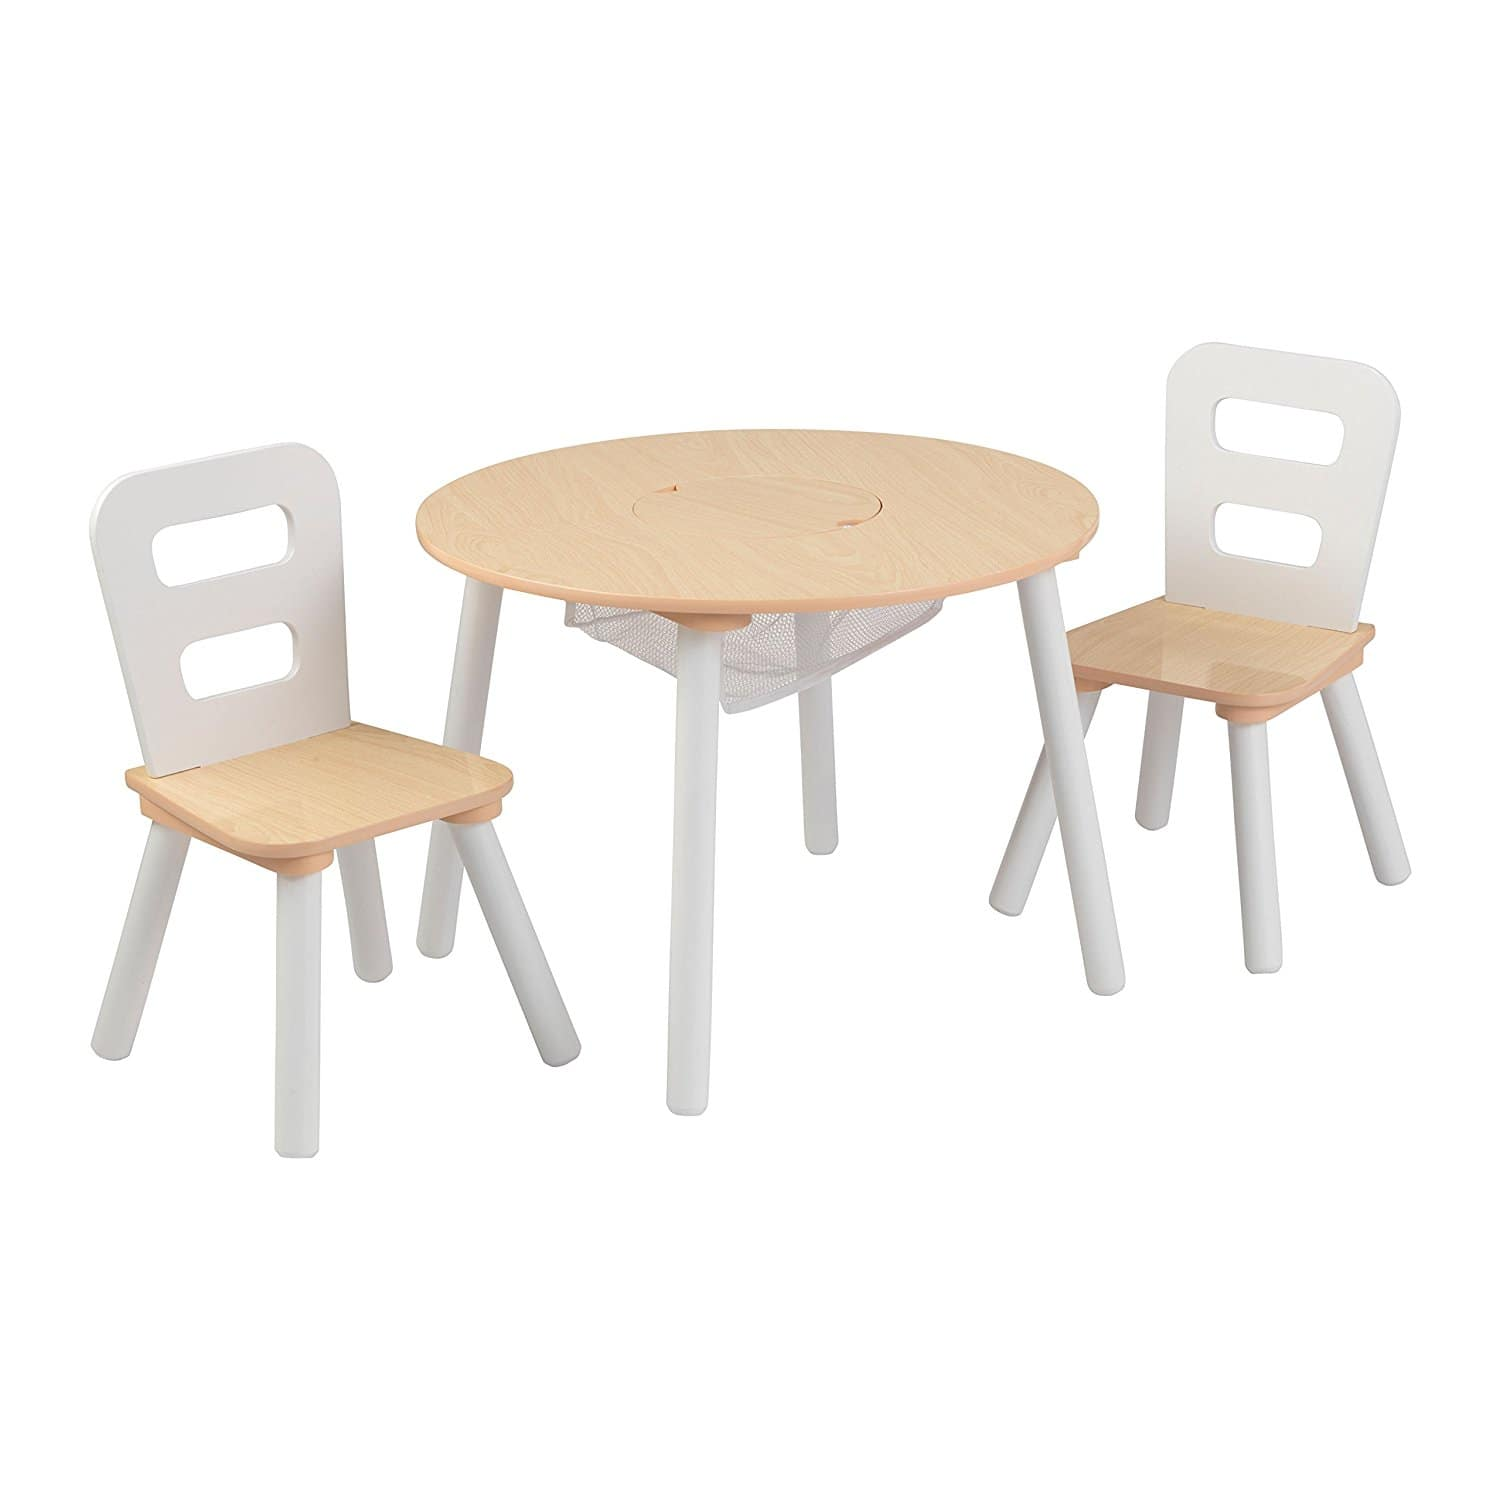 KidKraft Round Table and 2 Chairs Set White/Natural - $34.29 or lower @ Amazon/Target FS